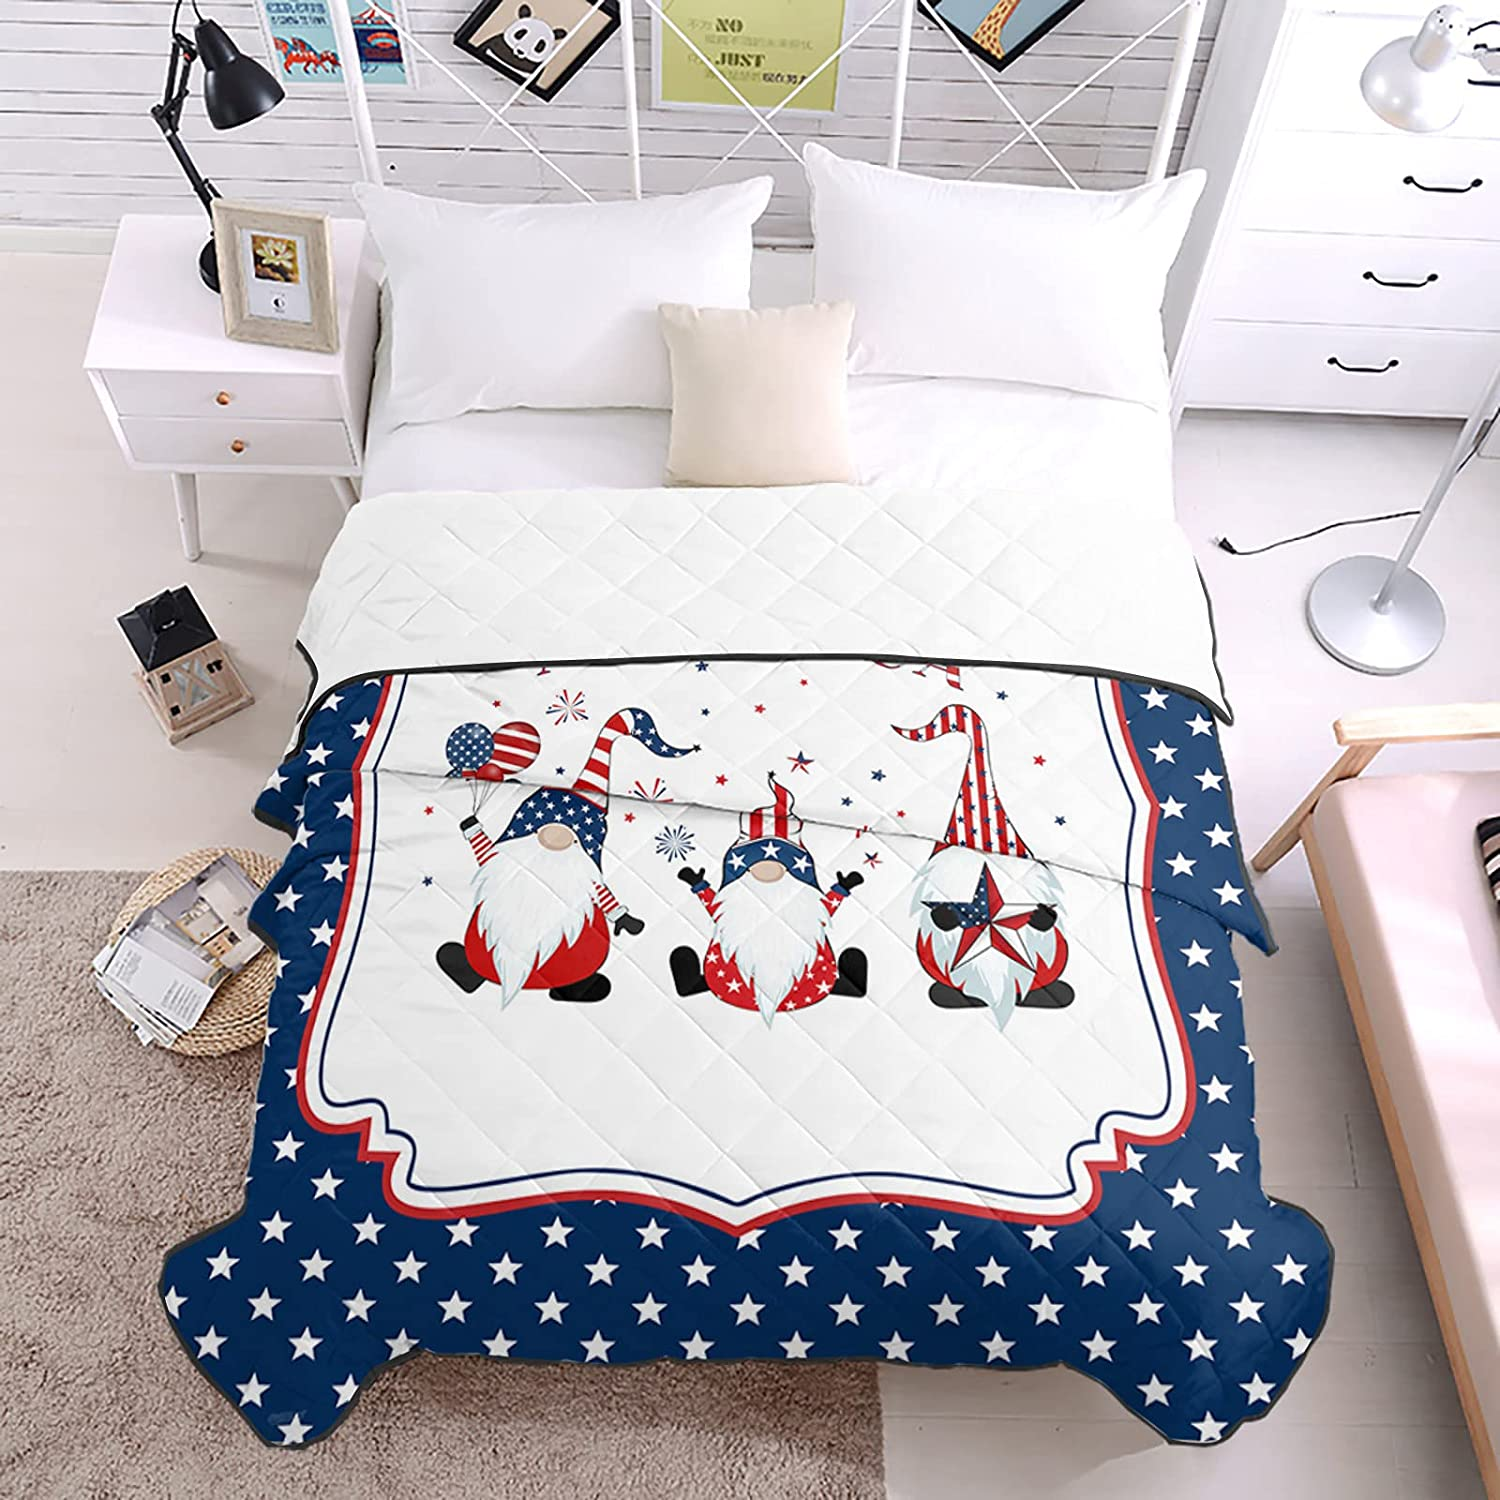 Bedding Duvets Starry White Beard Spring new work one after another Firework Gnomes Balloons National uniform free shipping Hold